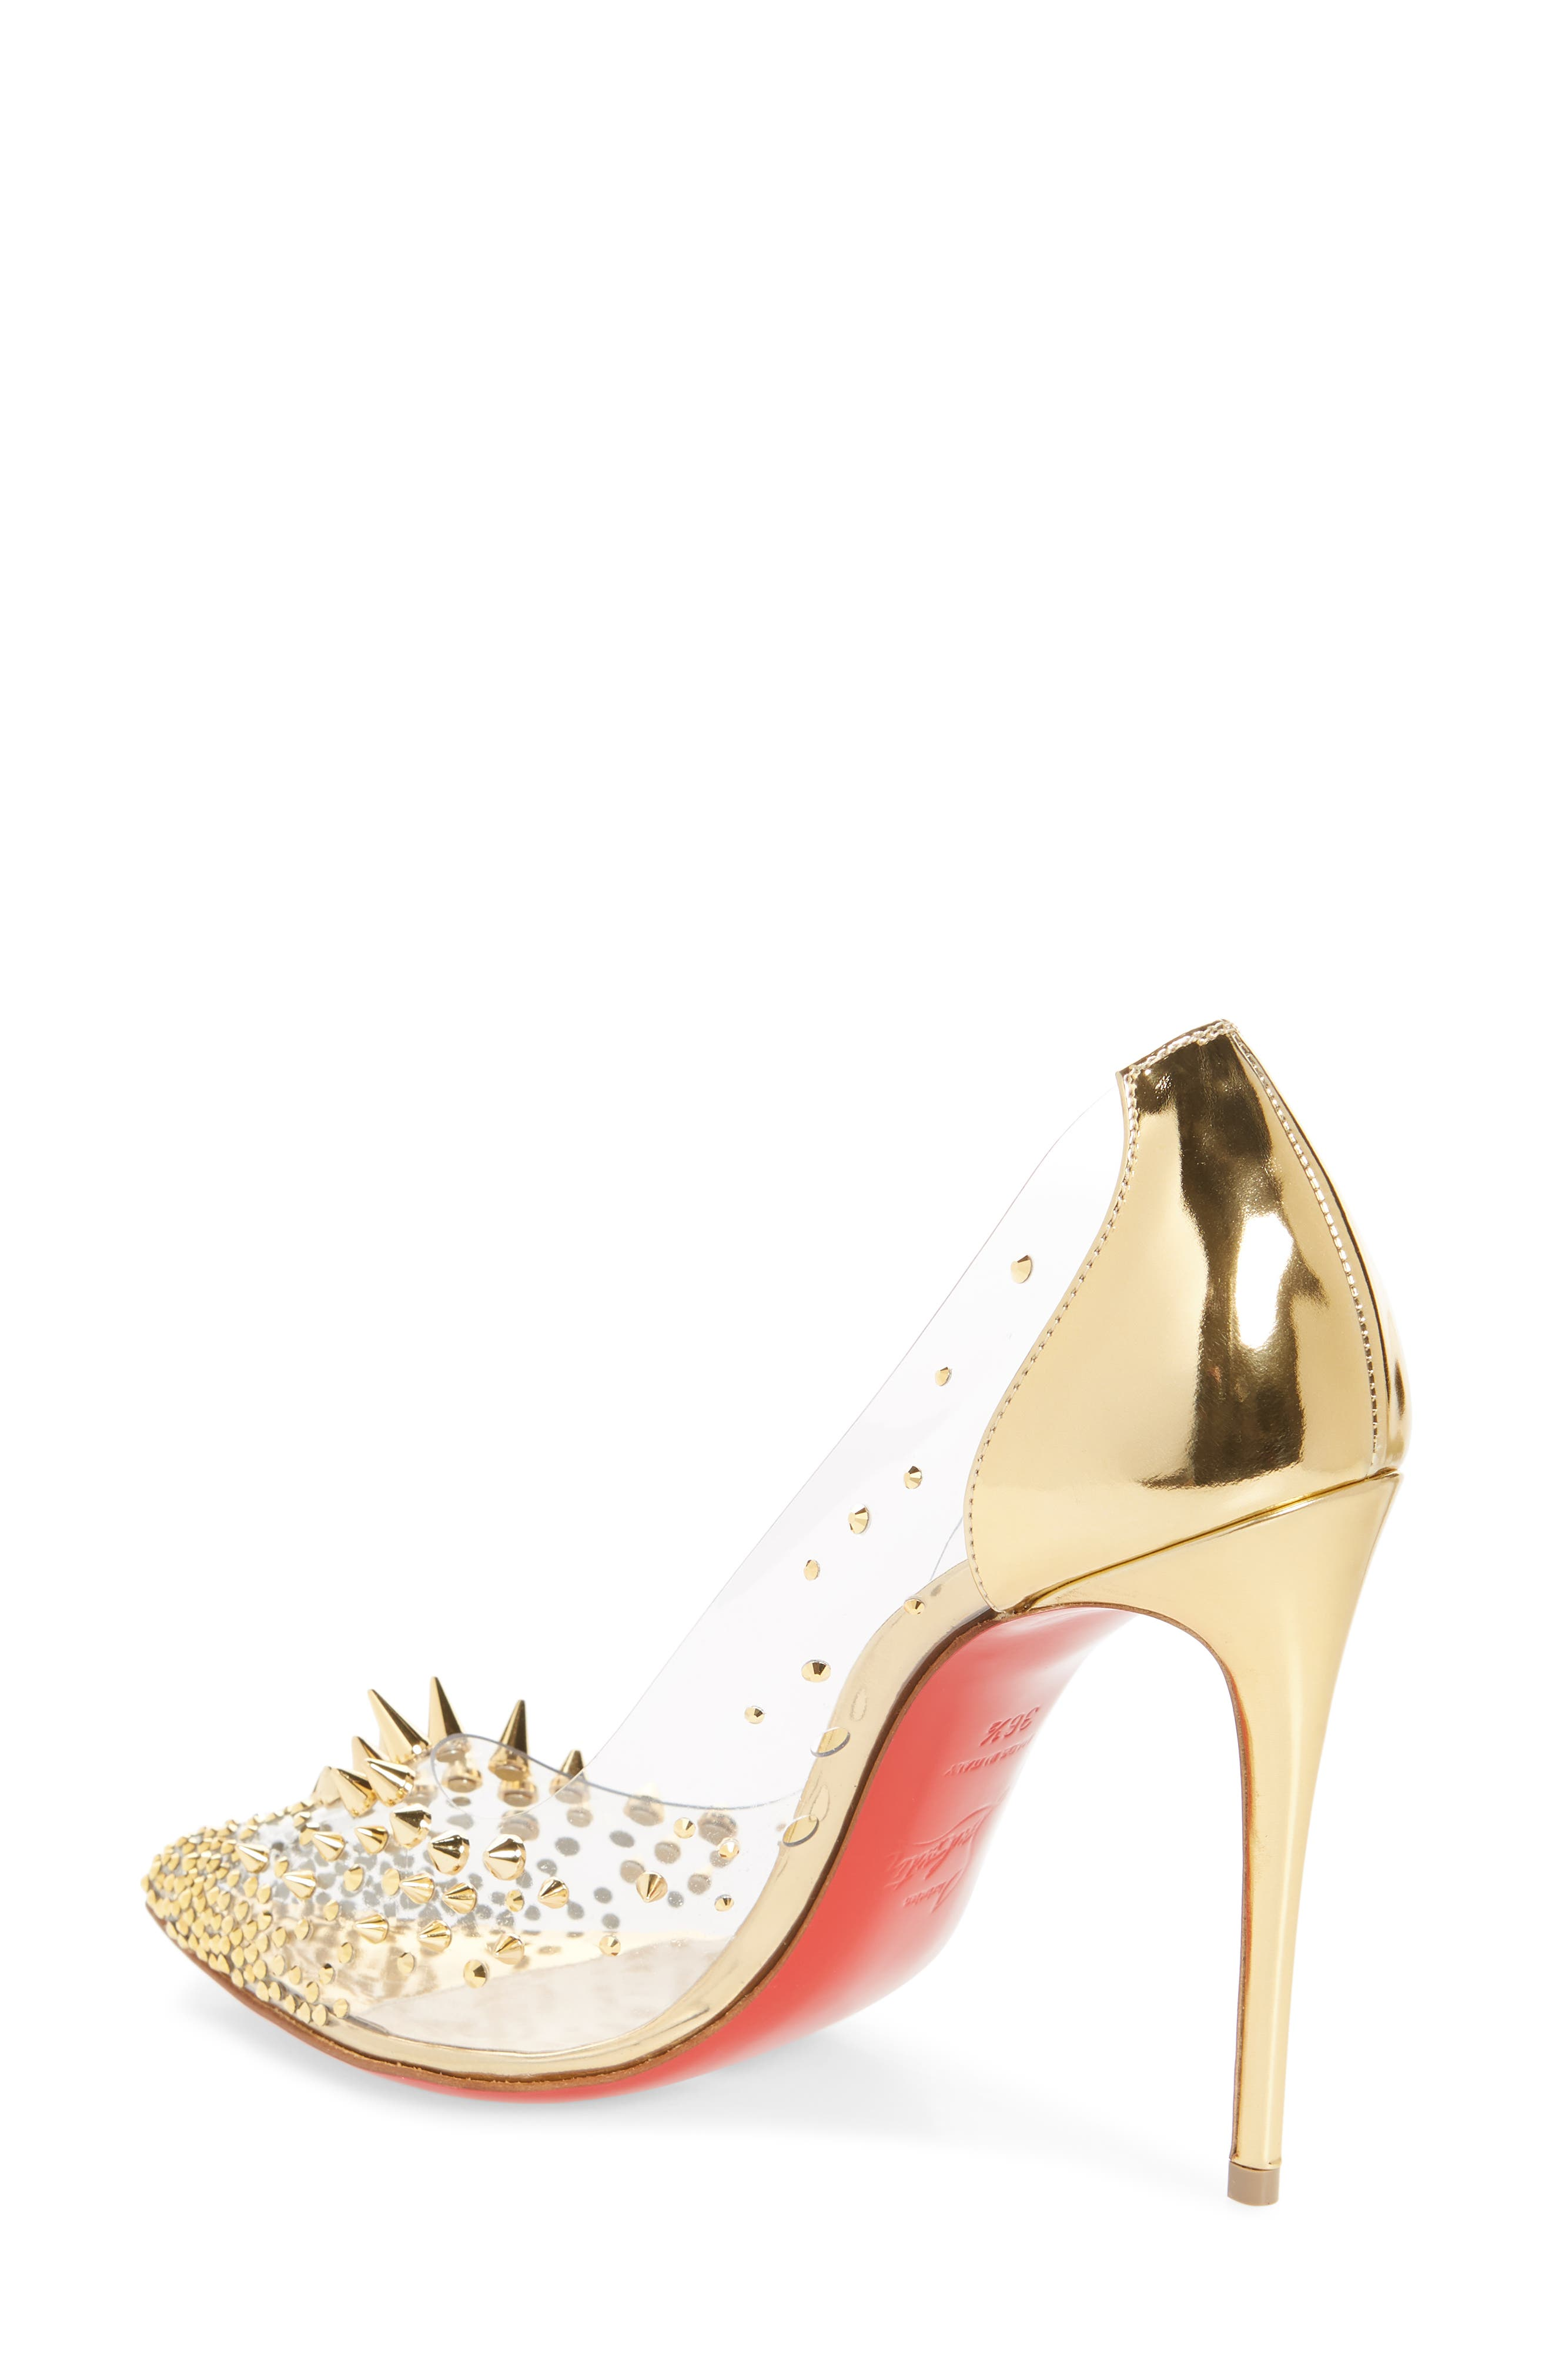 new products 1e6eb aab3d Women's Christian Louboutin Wedding Shoes | Nordstrom